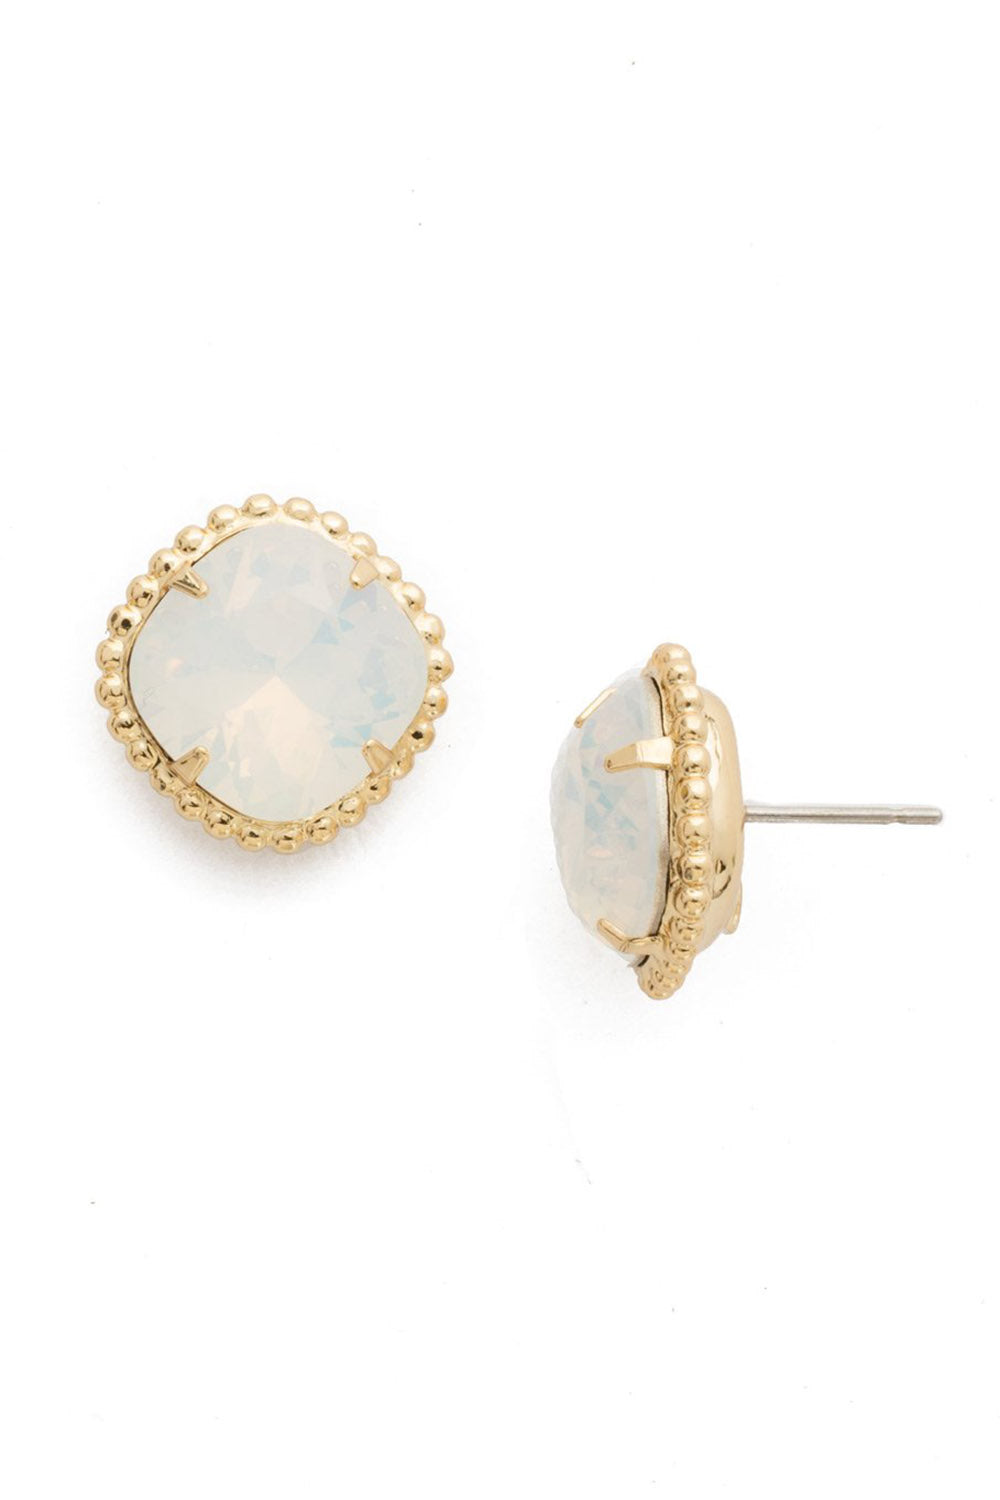 Cushion Cut Solitaire Stud Earring - White Opal